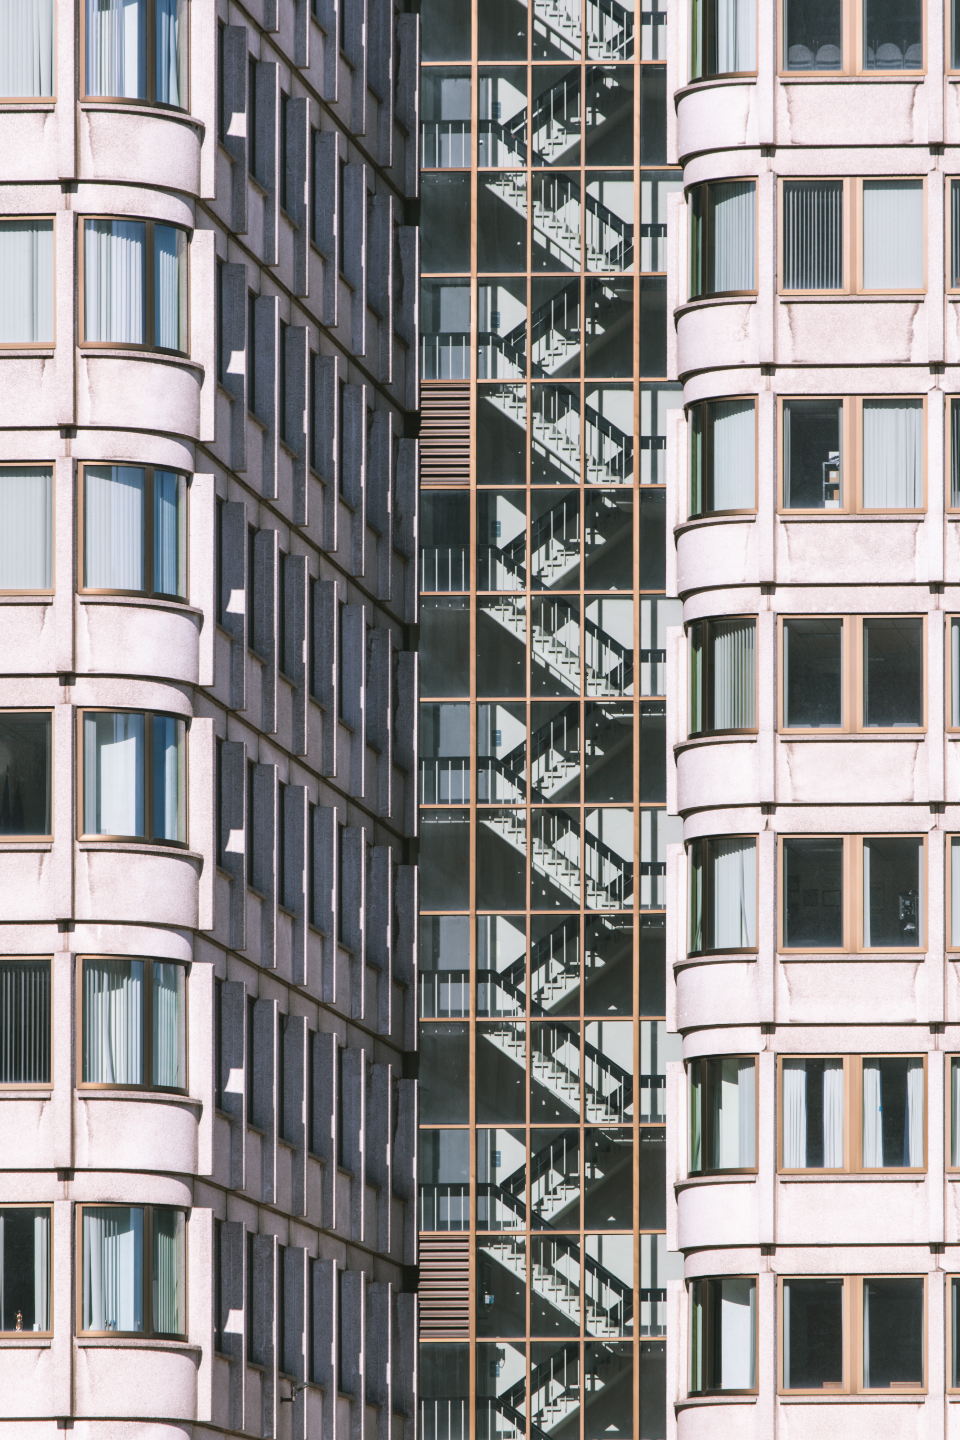 Free stock photo of city architecture